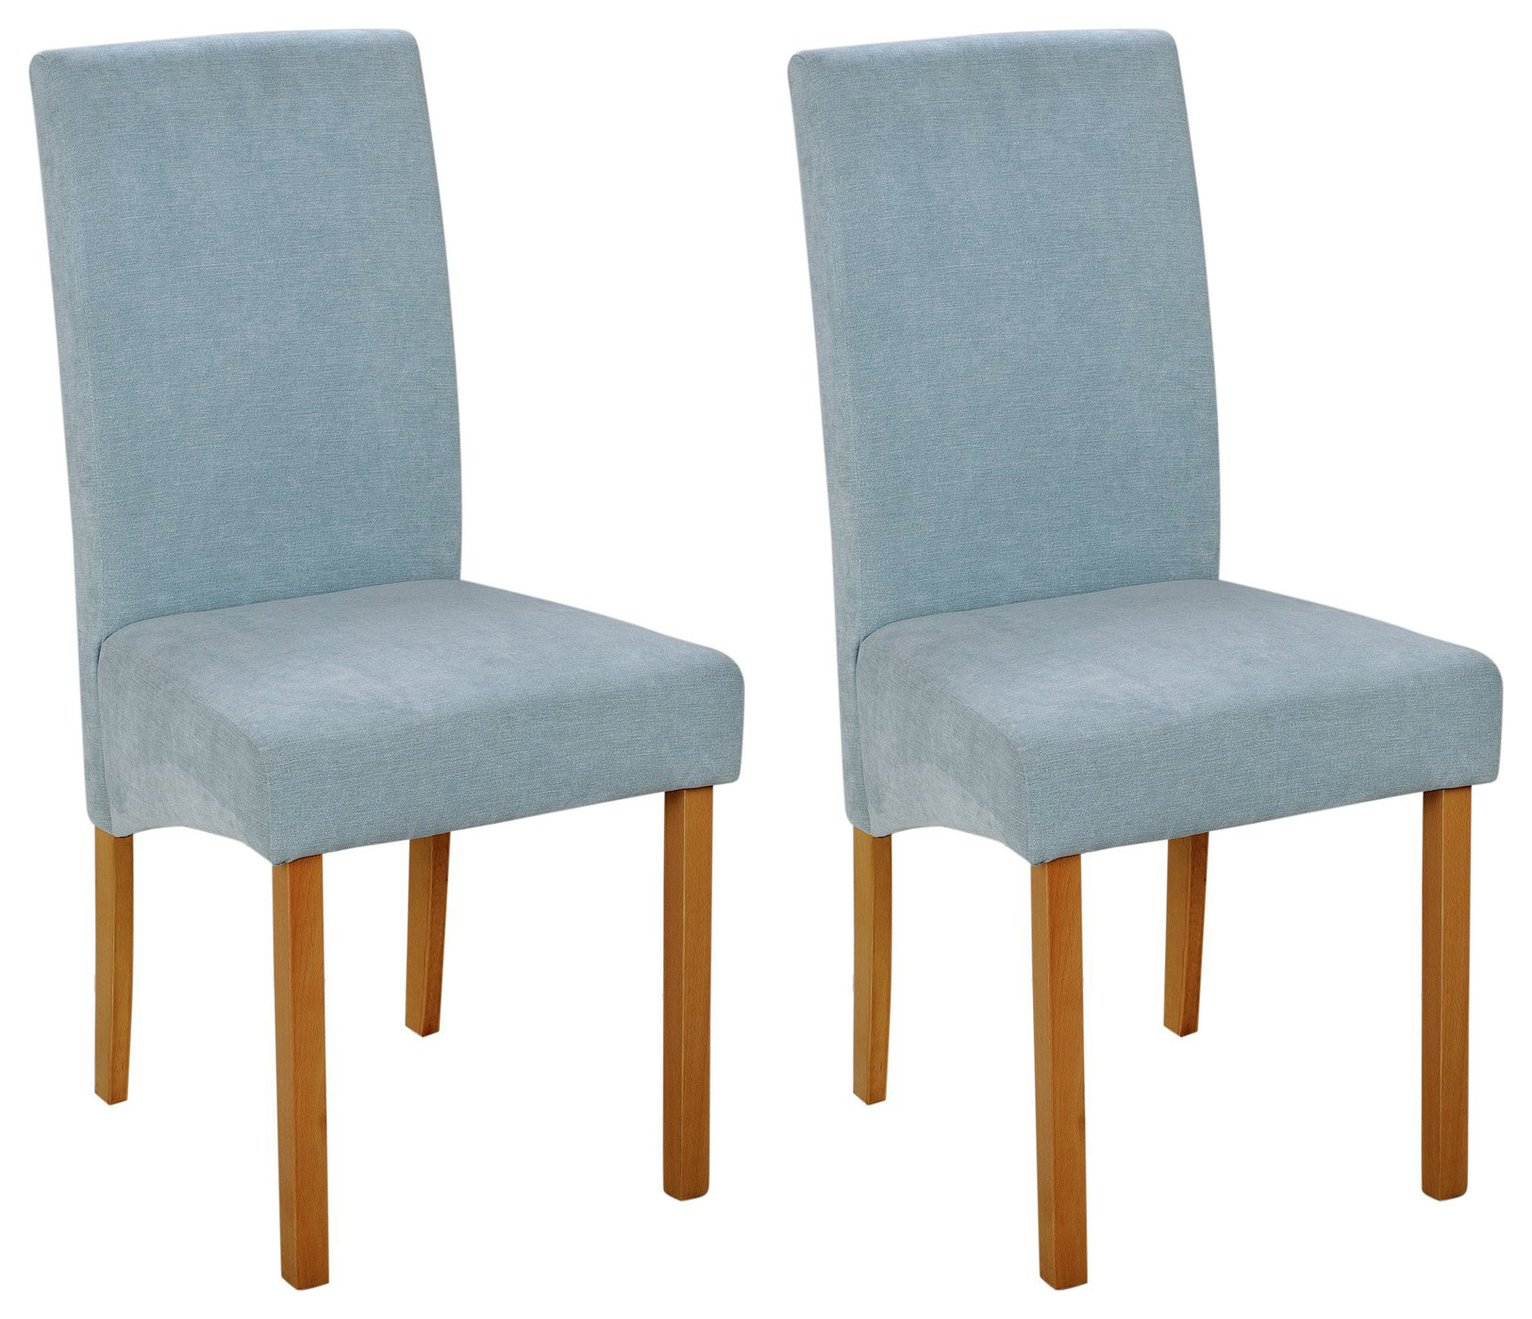 Argos Home Pair of Fabric Skirted Dining Chairs - Duck Egg